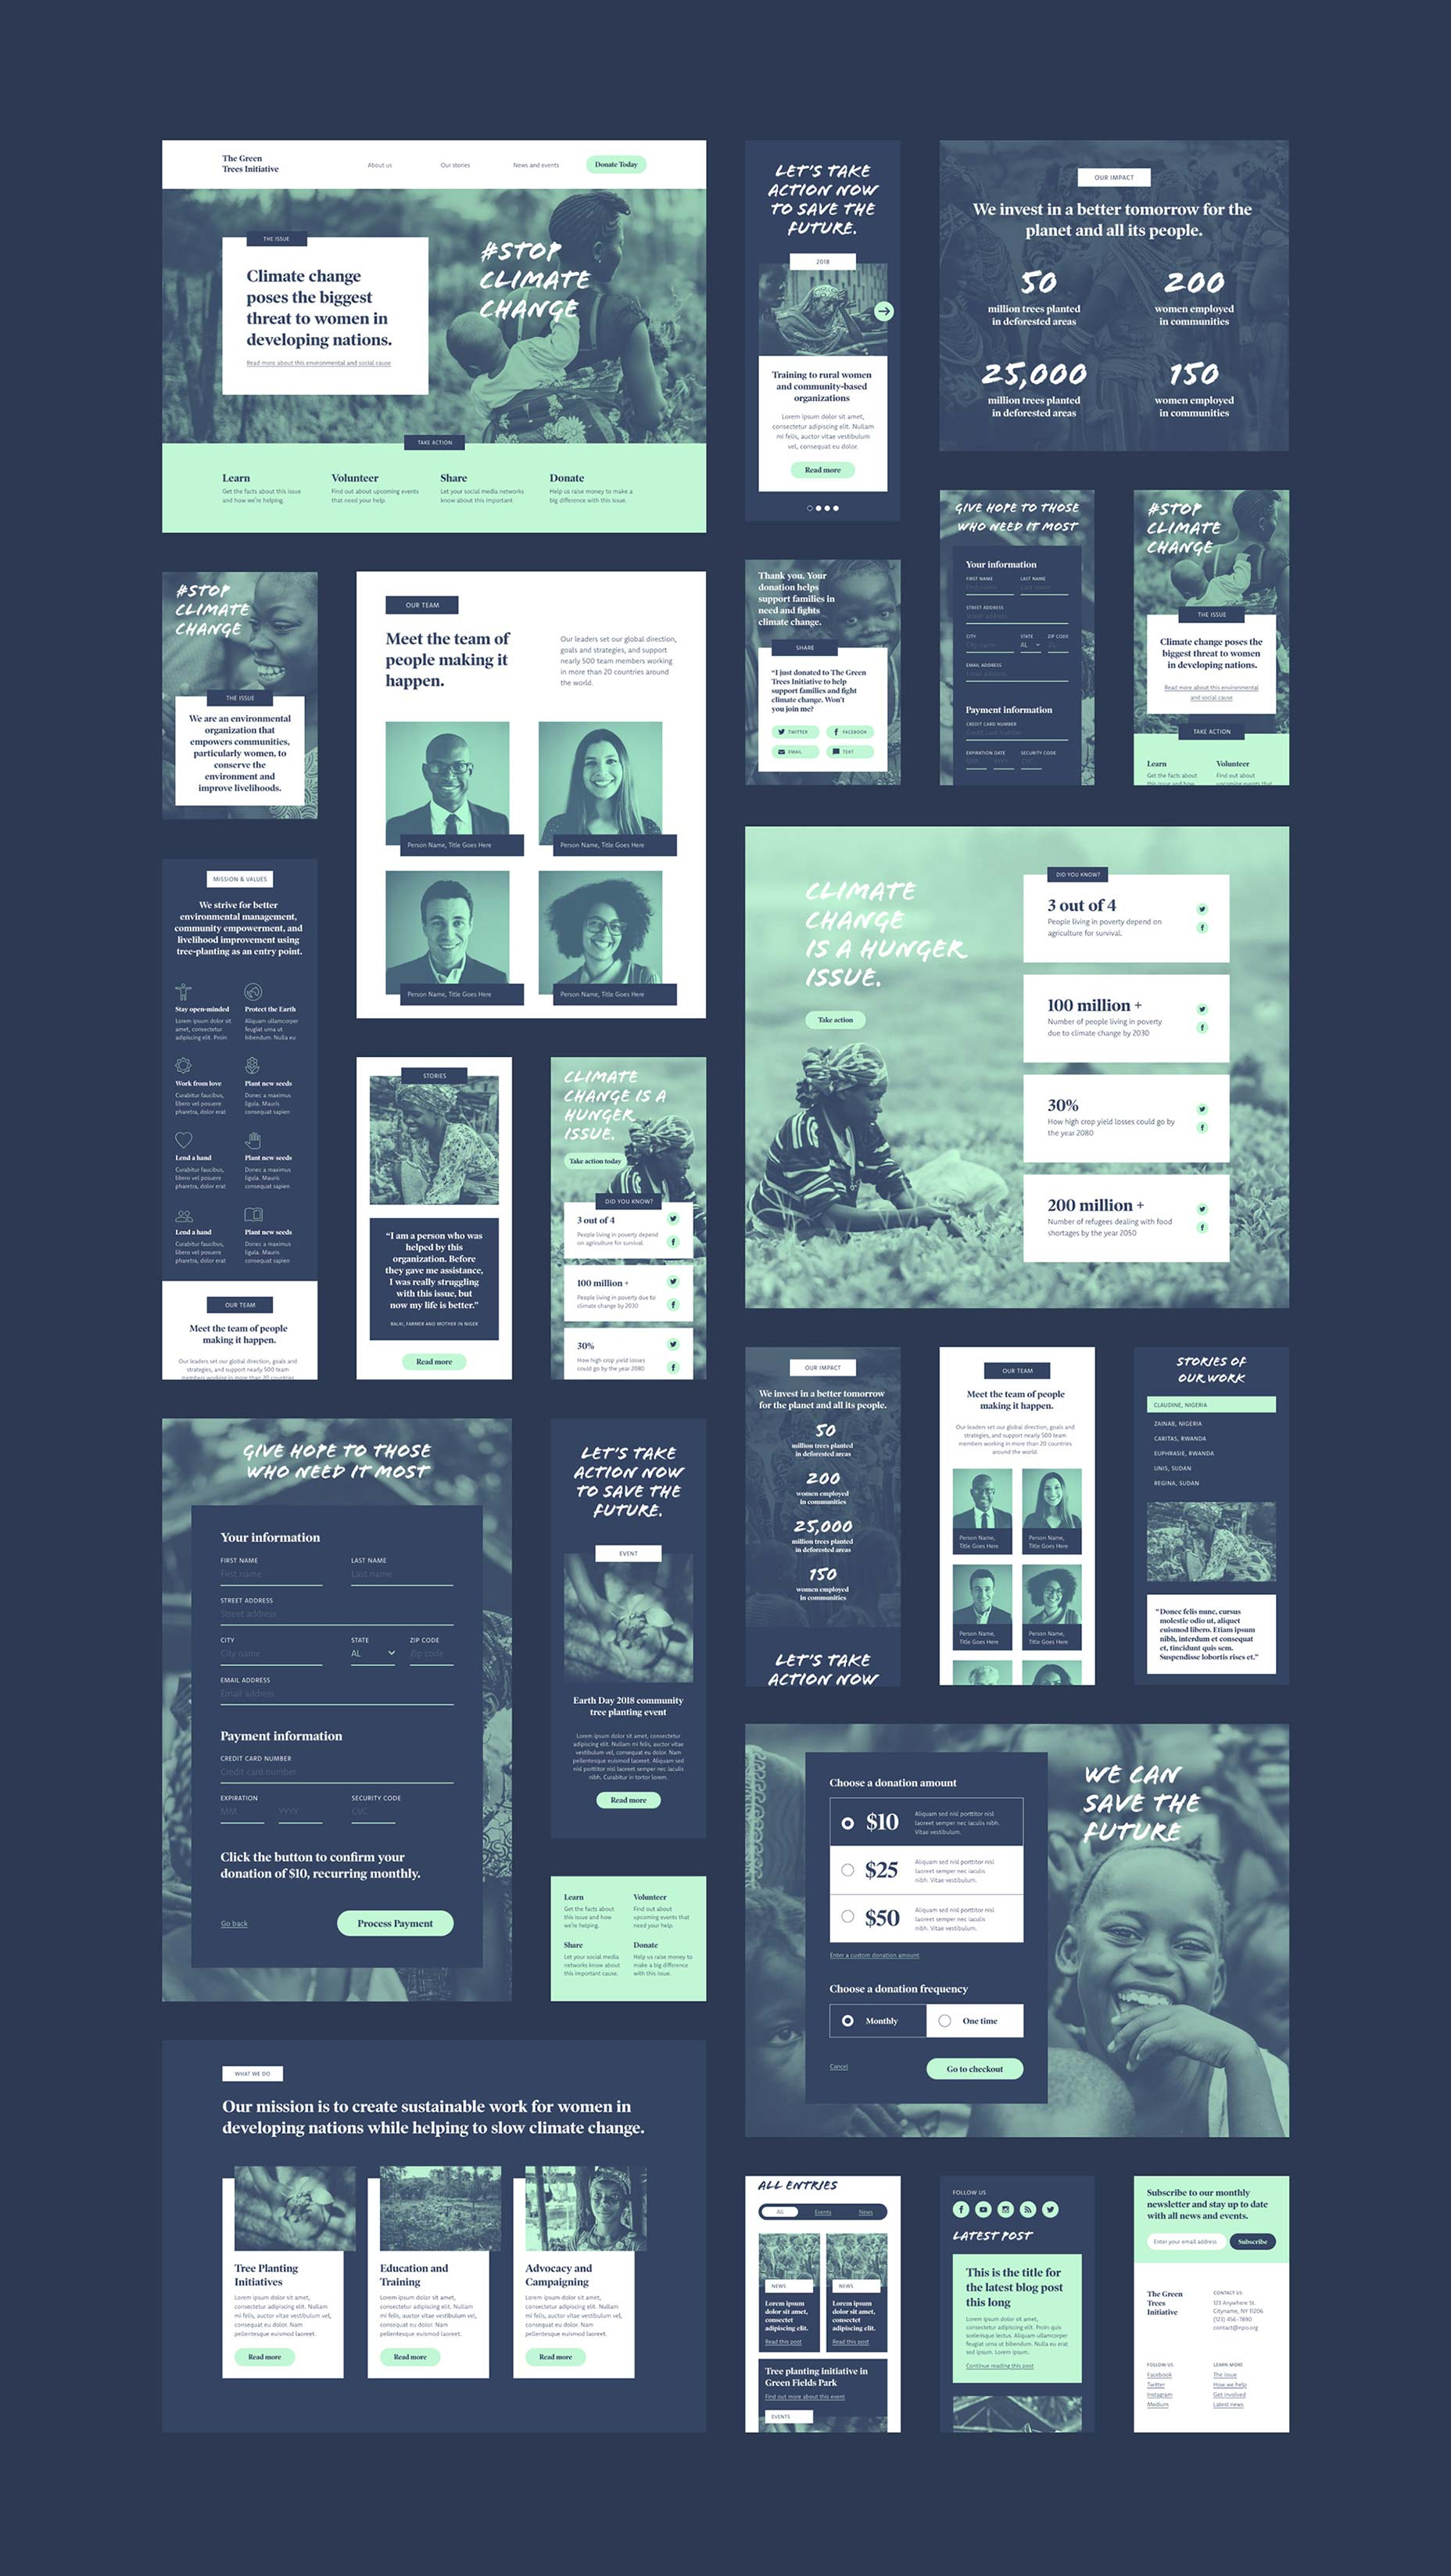 Free Download: Non-Profit UI Kit for Adobe XD | Webdesigner Depot